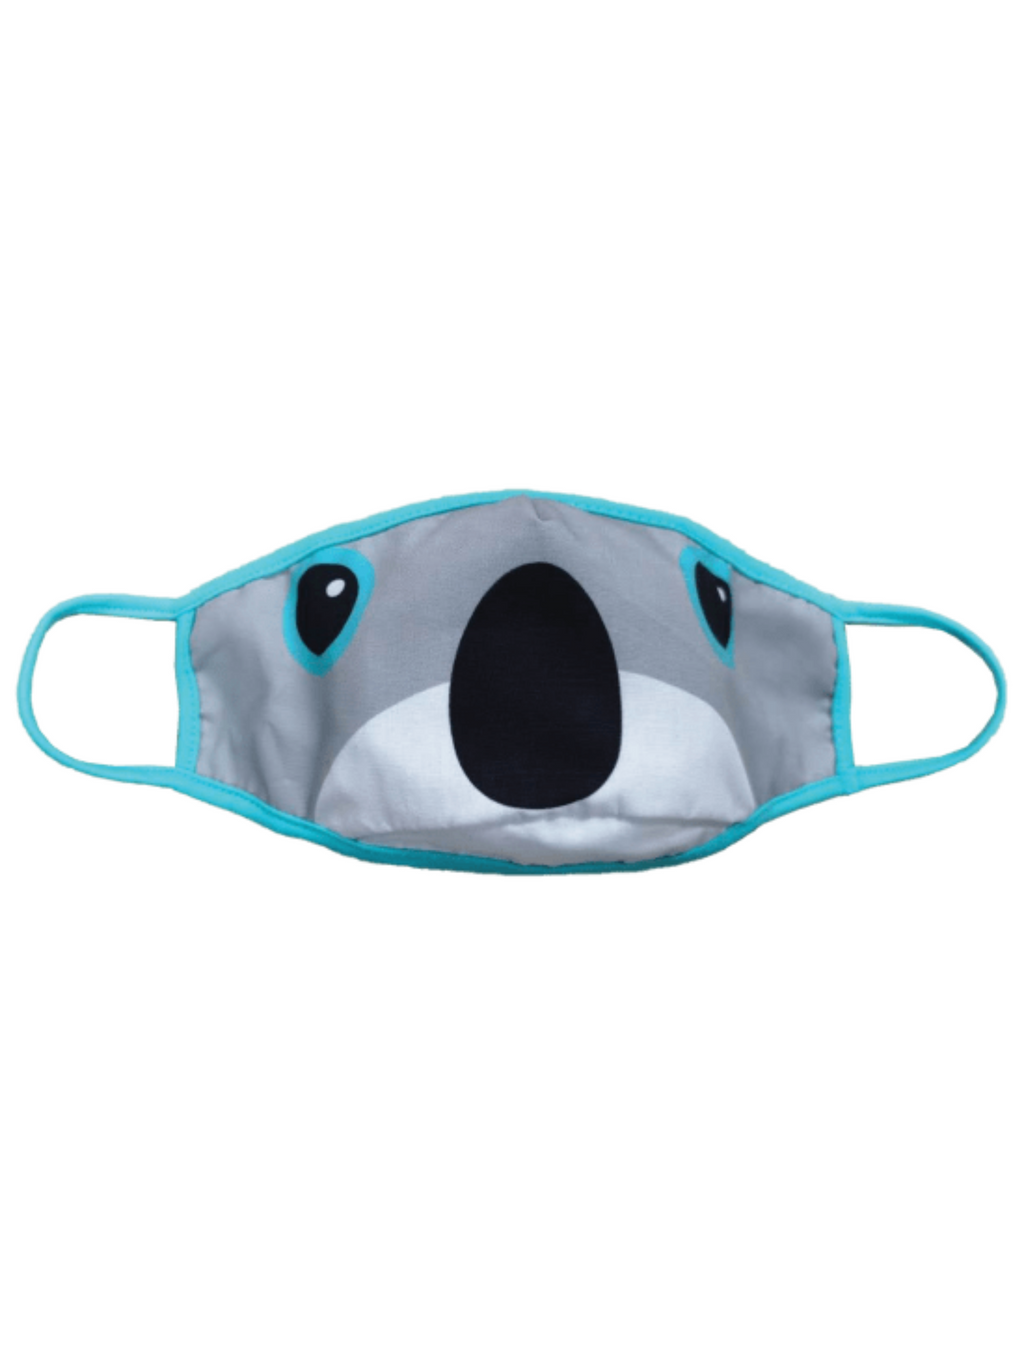 Kid's Protective Face Mask - Koala